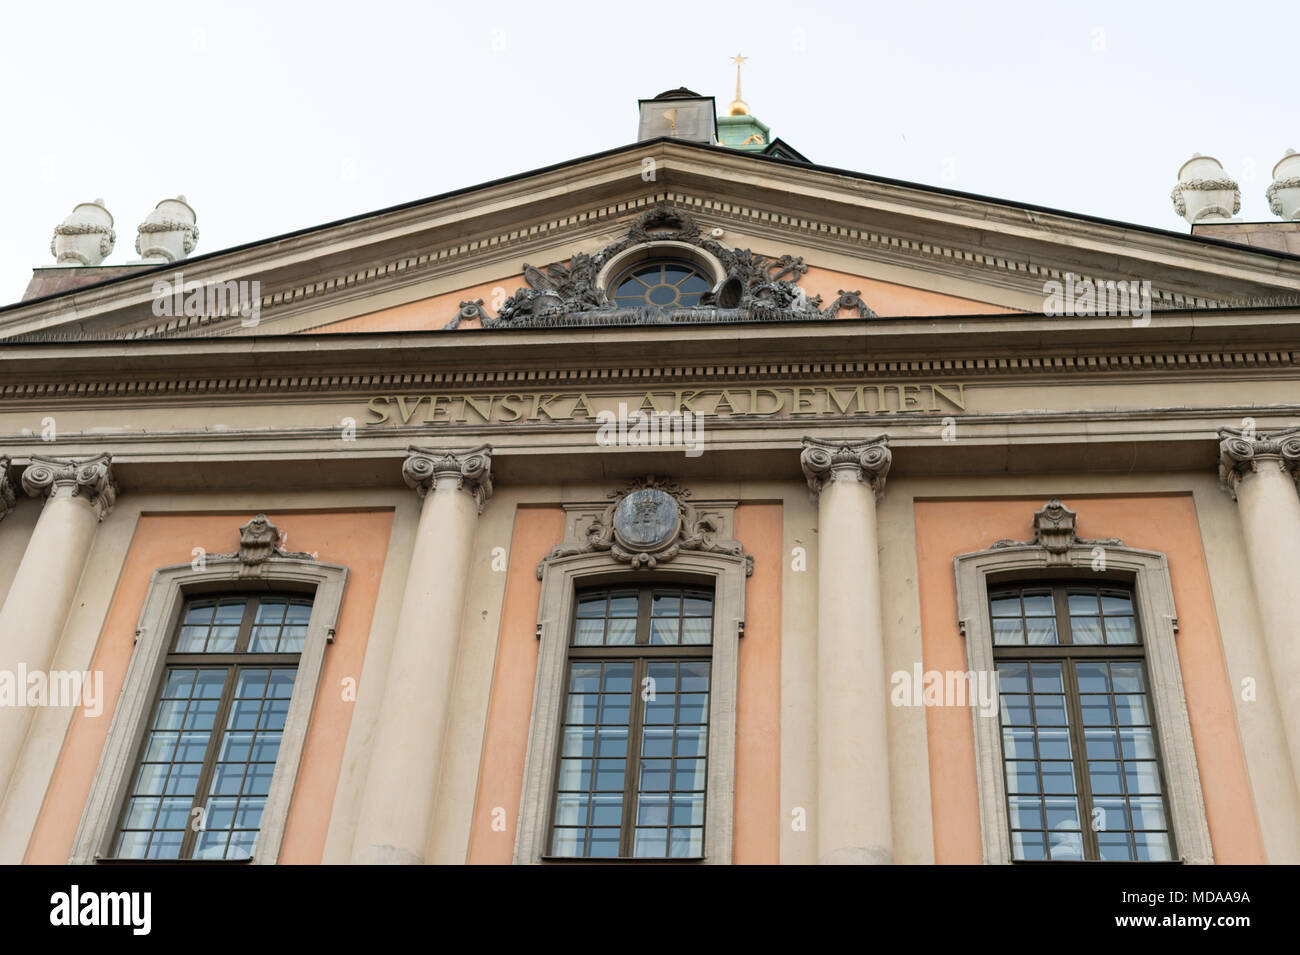 Stockholm, Sweden, 18th April, 2018. Crisis in the Swedish Academy. Later today (19th April) at 5 p.m. a manifestation calling on the entire Swedish Academy to resign. The manifestation has attracted great interest. It is also time for the remaining members at the Swedish Academy to be seen for their weekly meeting at 5 p.m. (The Swedish Academy is responsible for choosing the Nobel Laureates in Literature). Credit: Barbro Bergfeldt/Alamy Live News - Stock Image